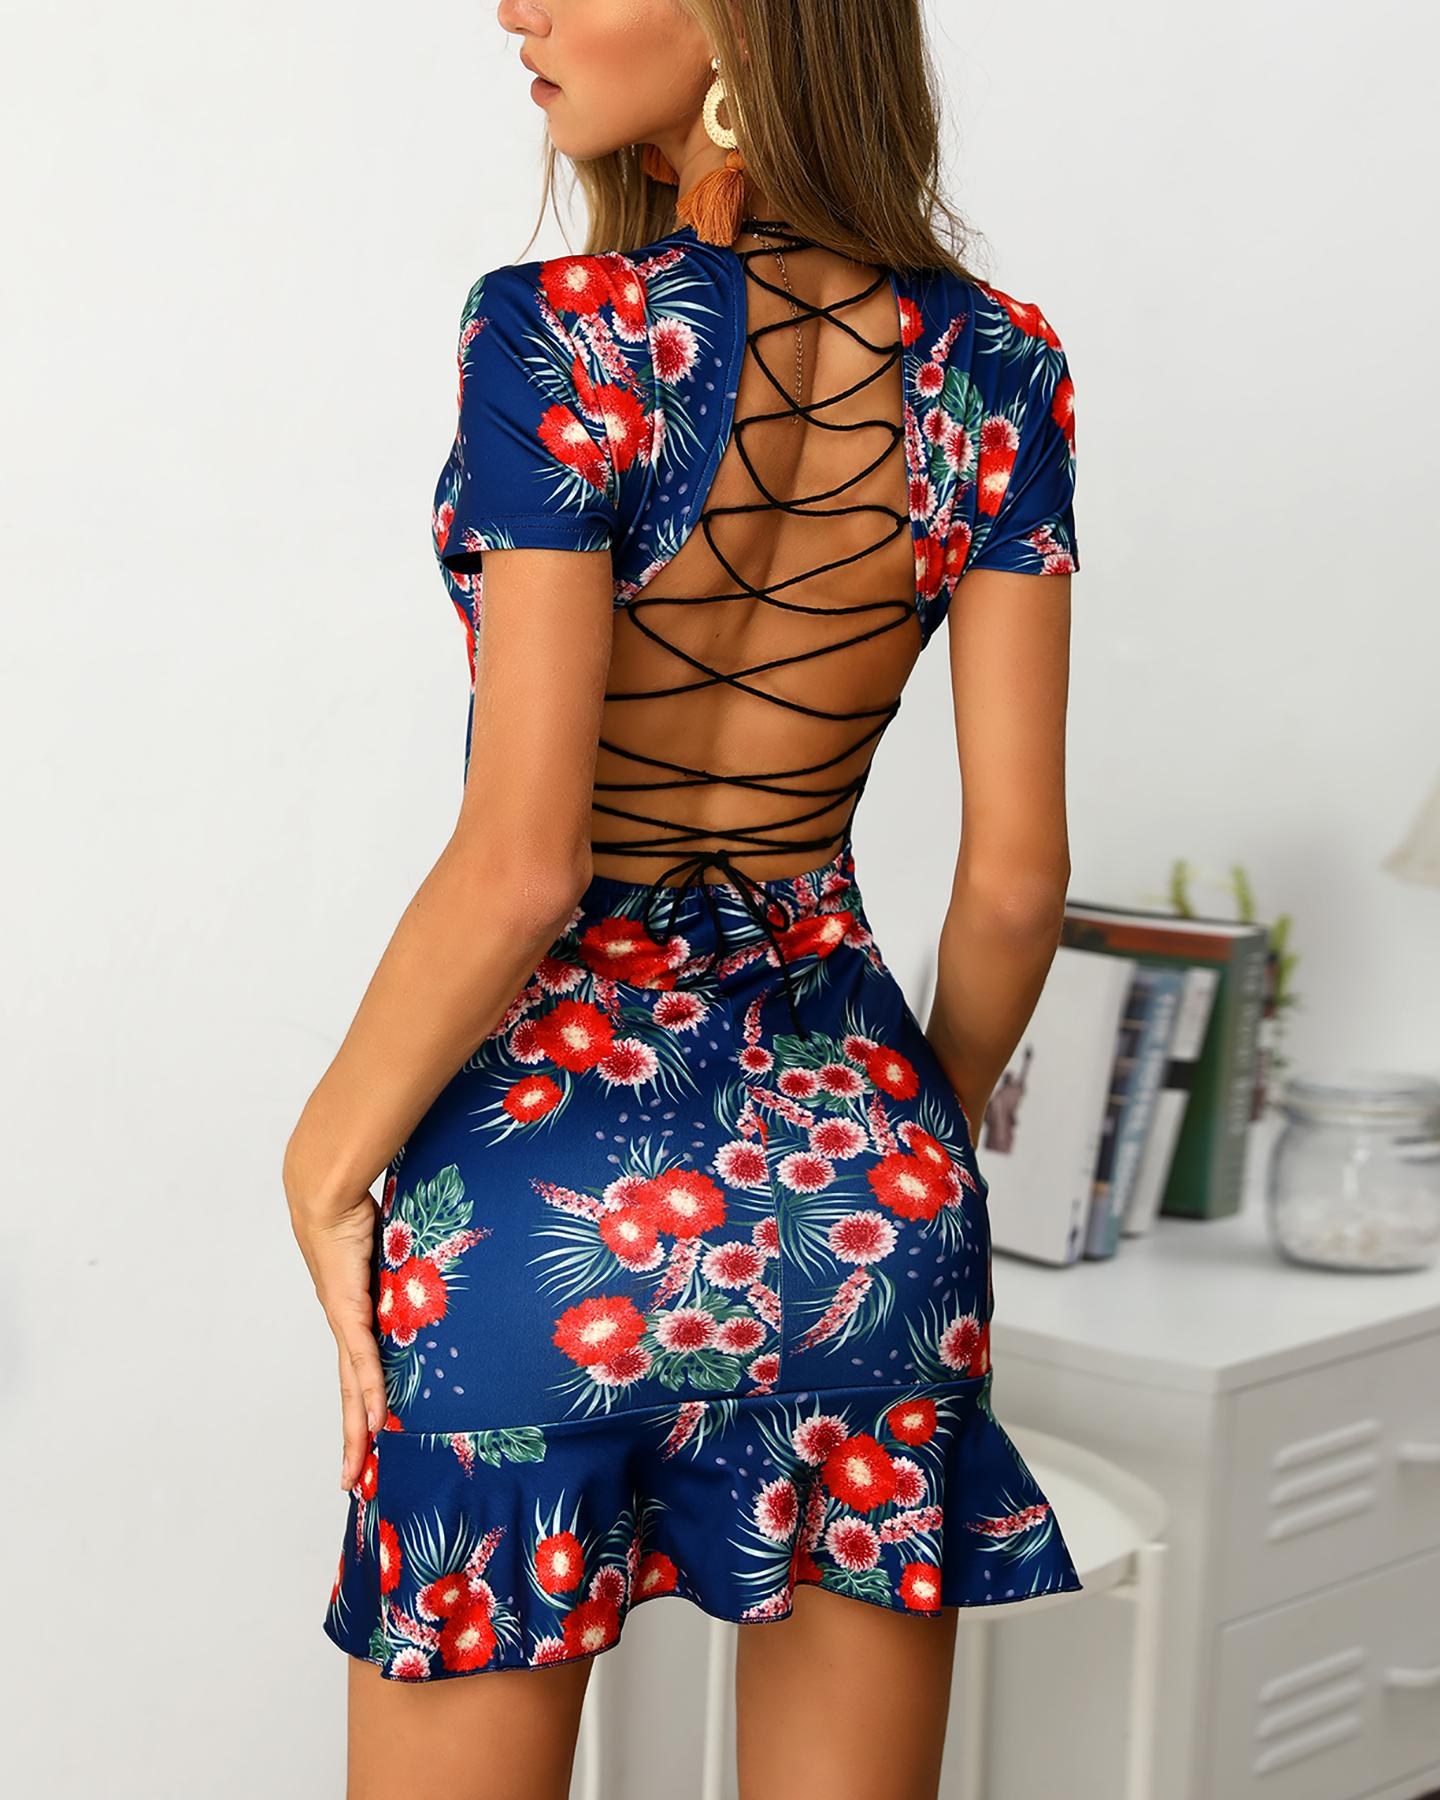 Floral Print Ruffles Lace-Up Back V-Neck Wrap Dress